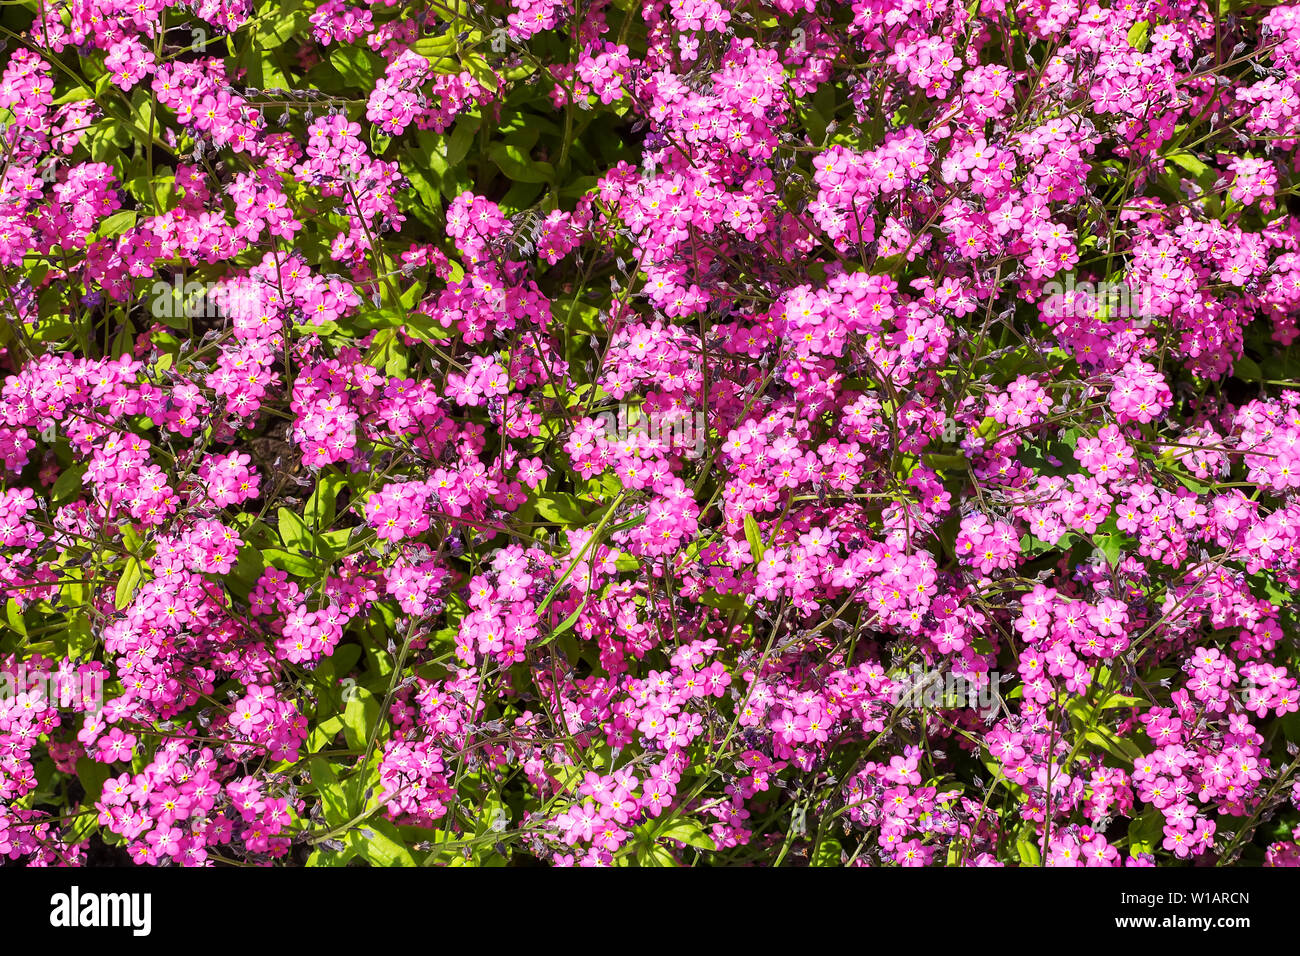 Close-up of forget-me-nots or Myosotis, herb flowerbed plant, blooming with small purple or pink flowers on a sunny day. Nature and botany. Stock Photo